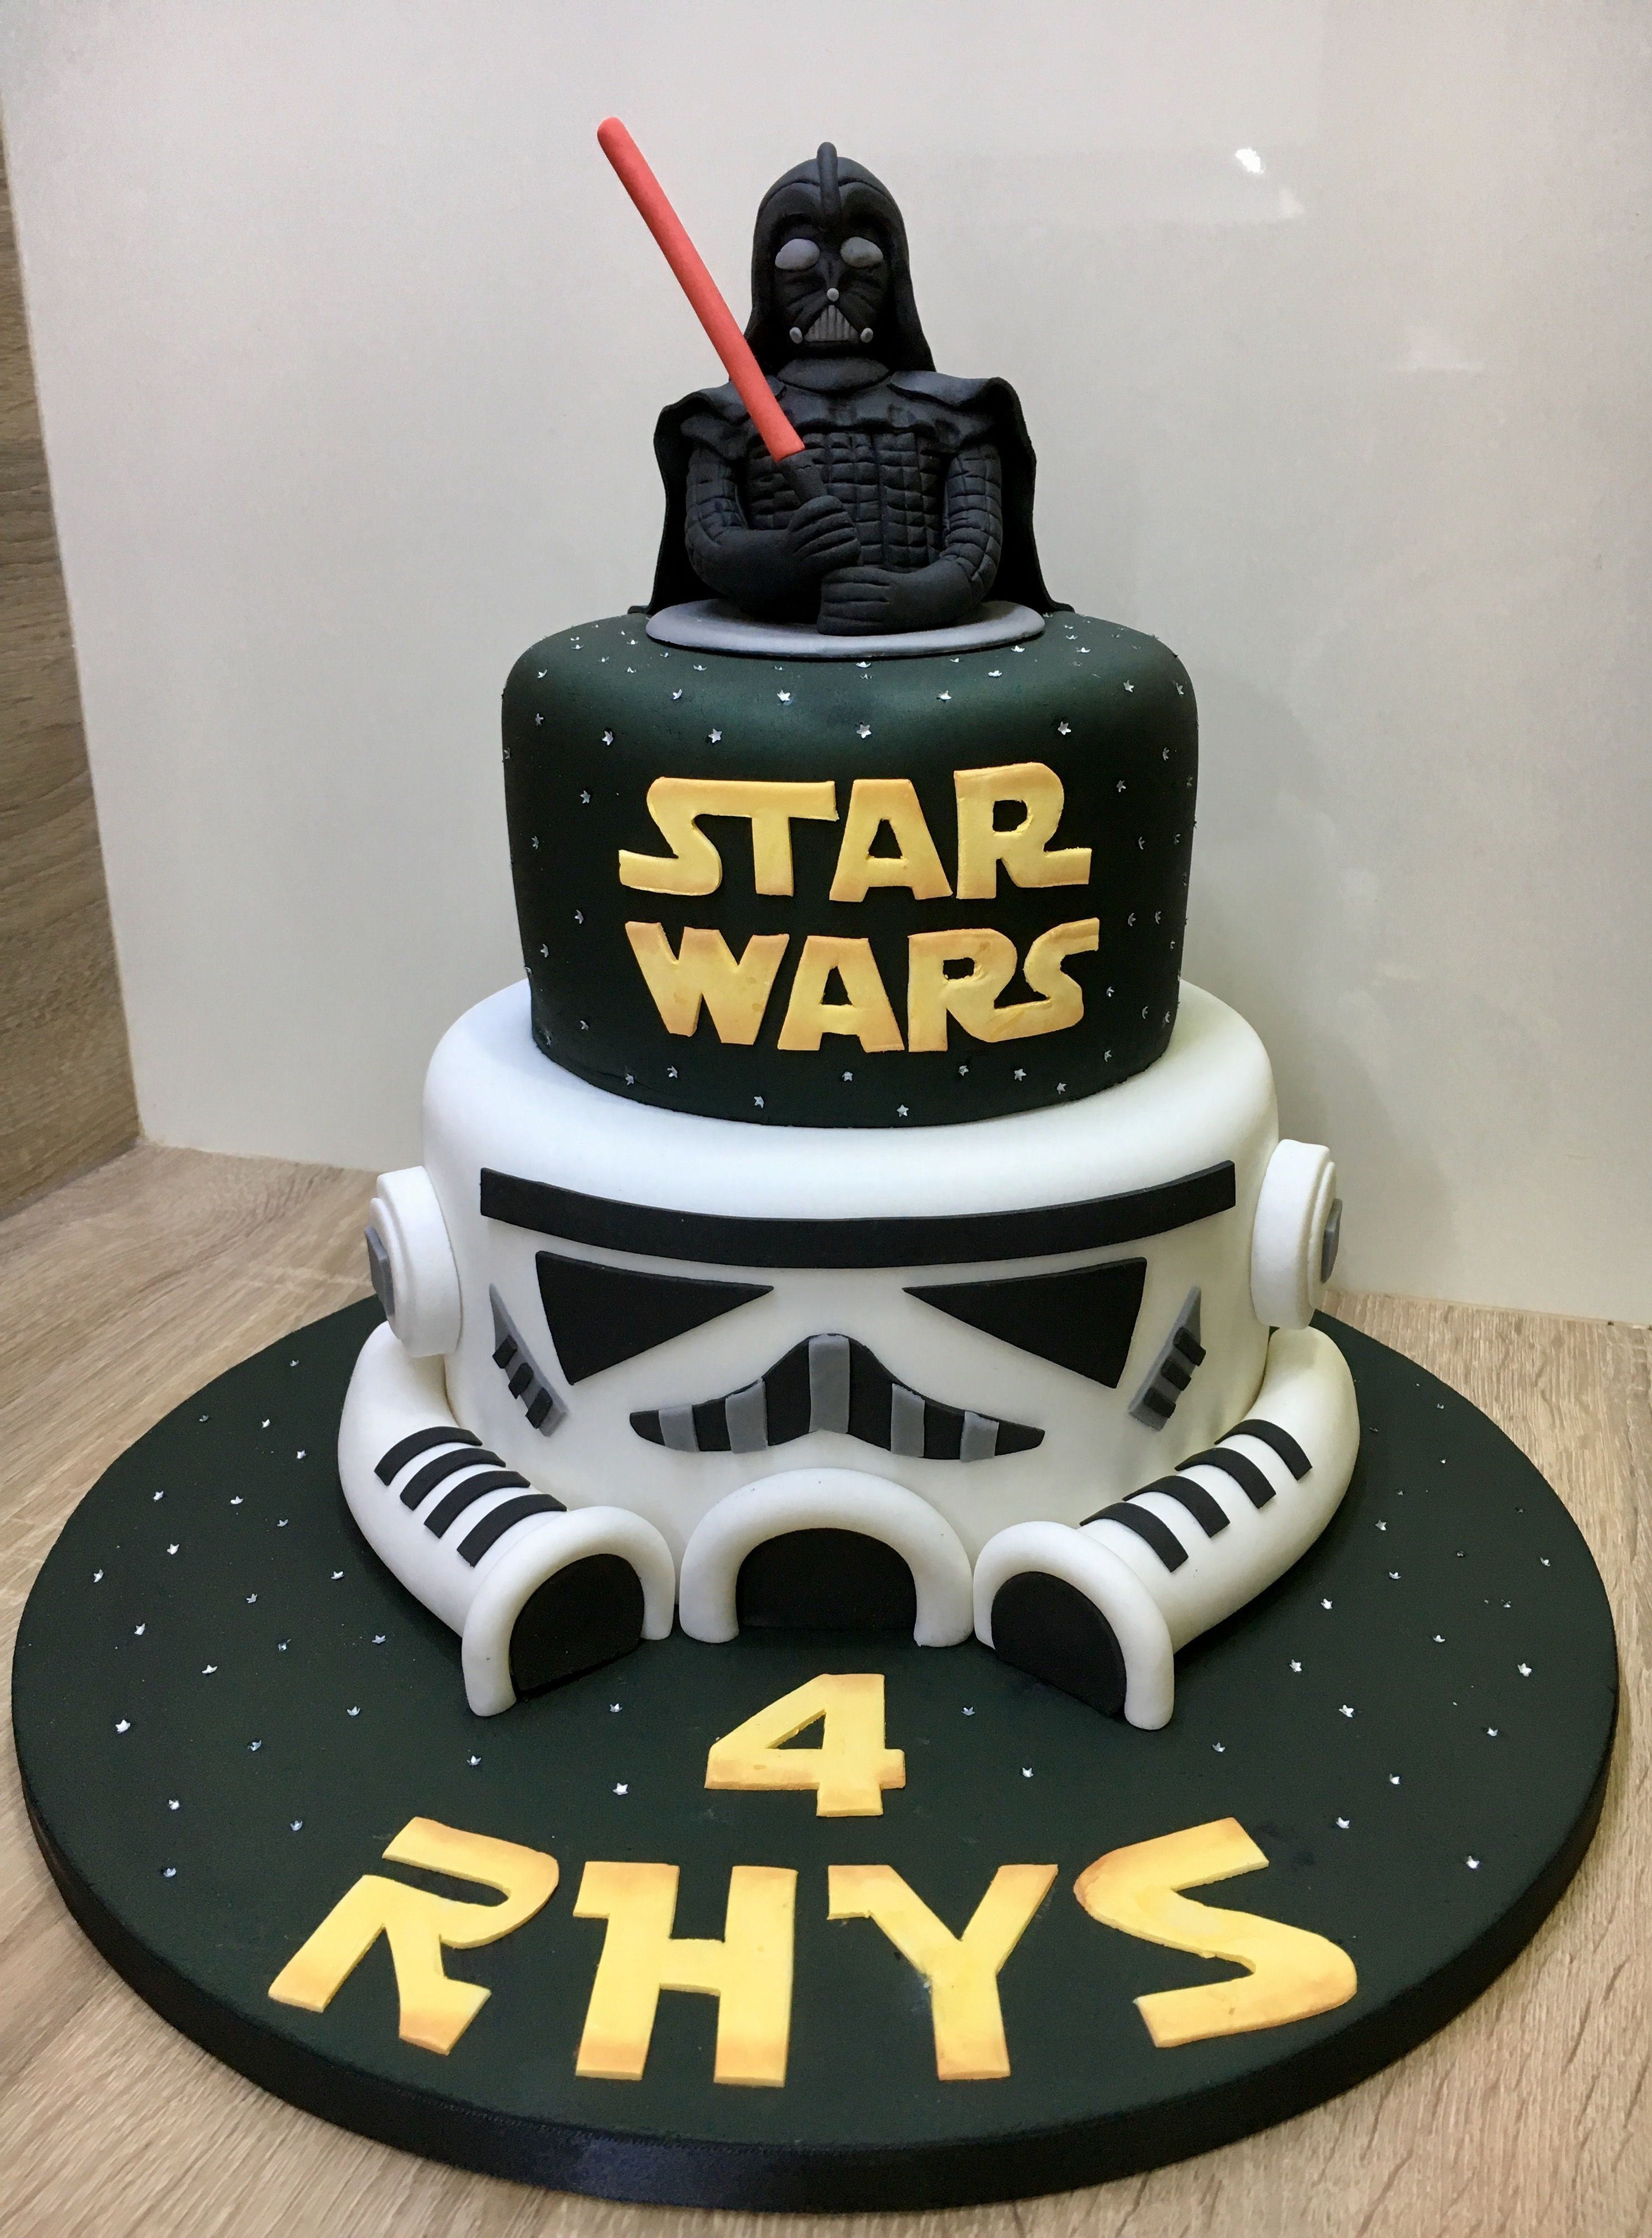 23 Creative Image Of Star Wars Birthday Cake Ideas With Images